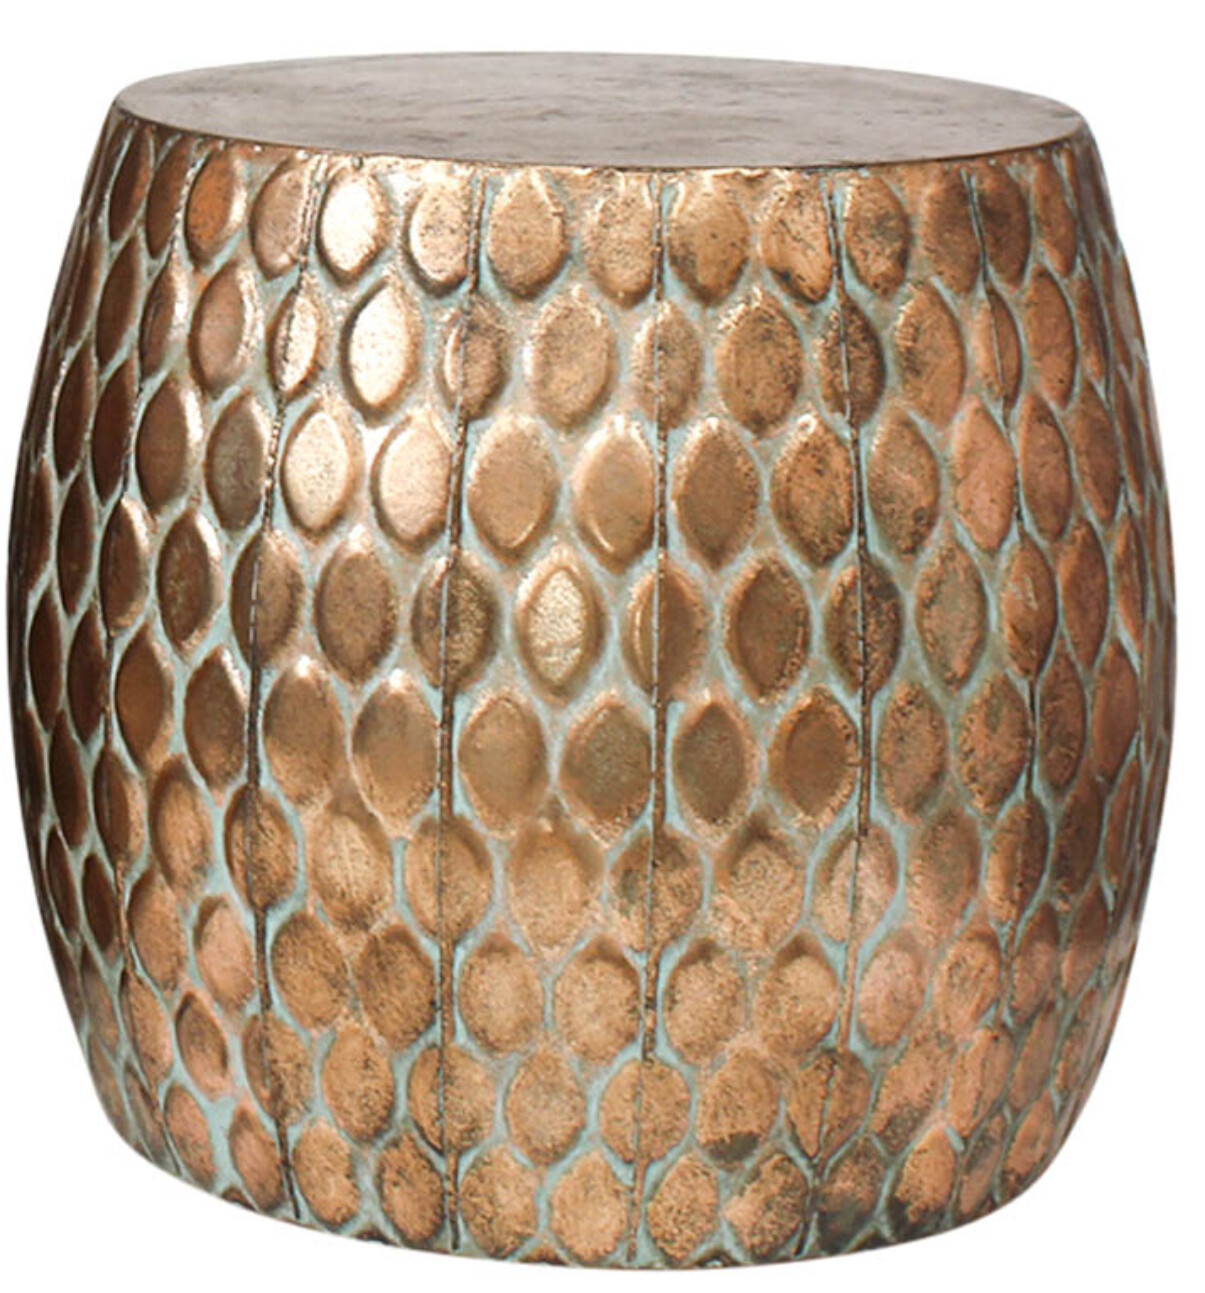 FURNITURE - METAL TURTLE SCALE STOOL - SMALL